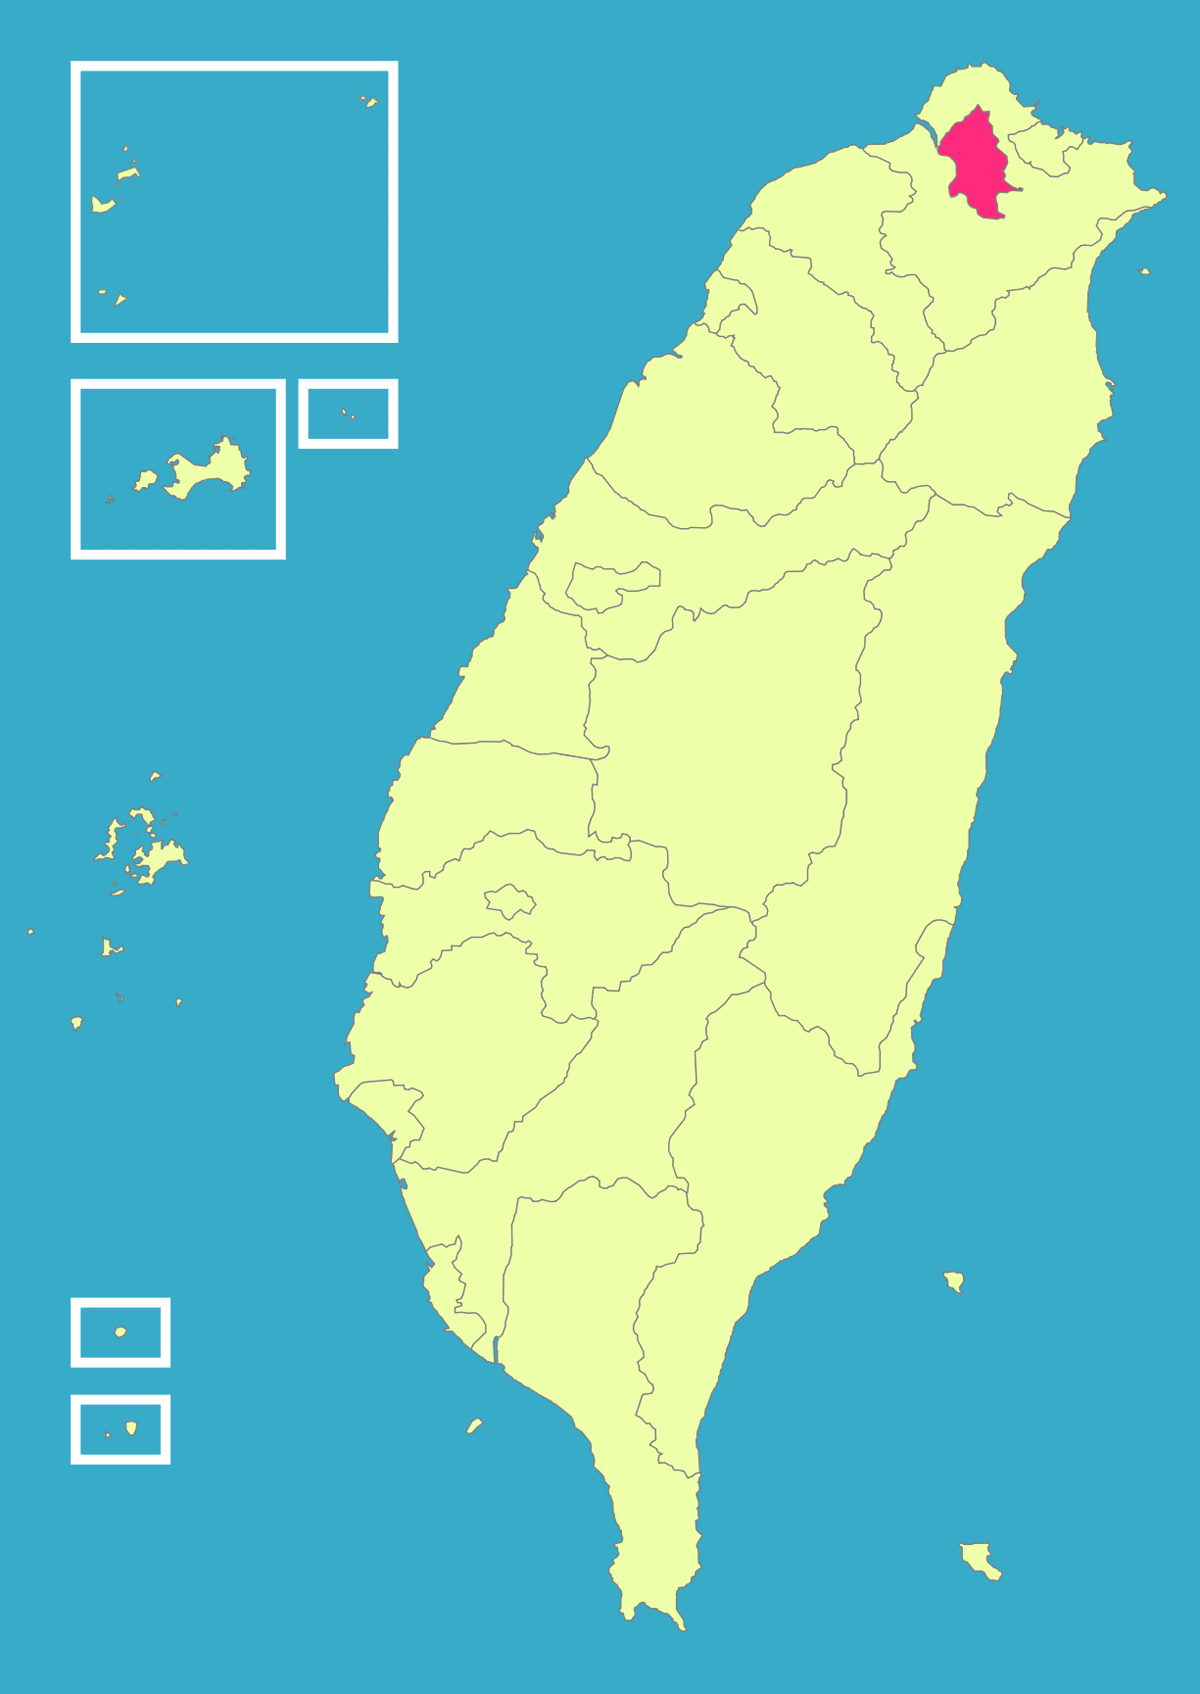 Taiwan Roc Political Division Map Taipei City large map